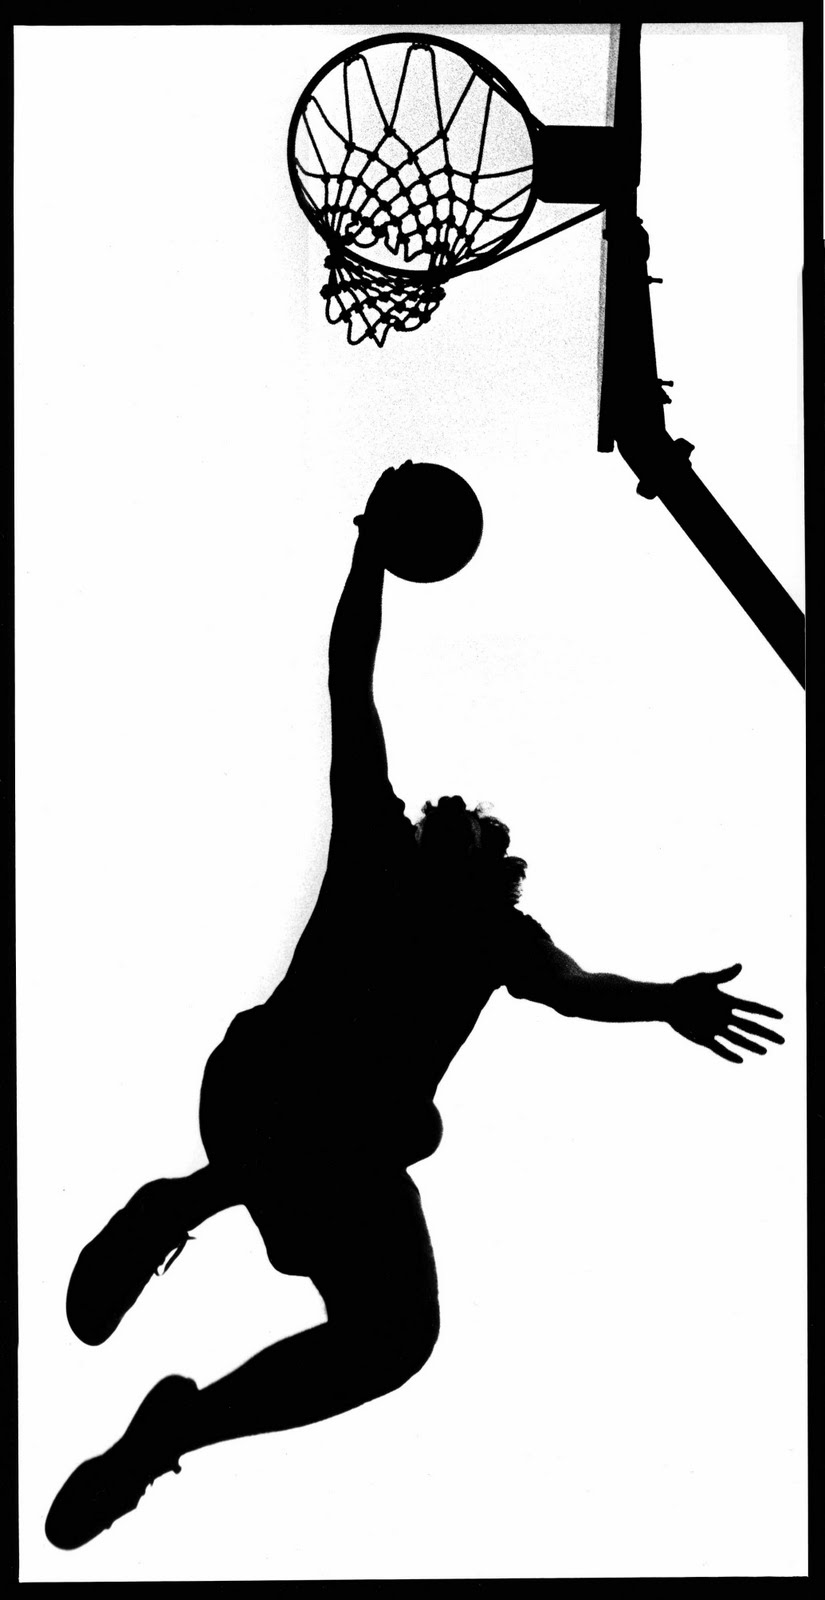 how to draw someone shooting a basketball free basketball shooter cliparts download free clip art how someone to draw shooting basketball a